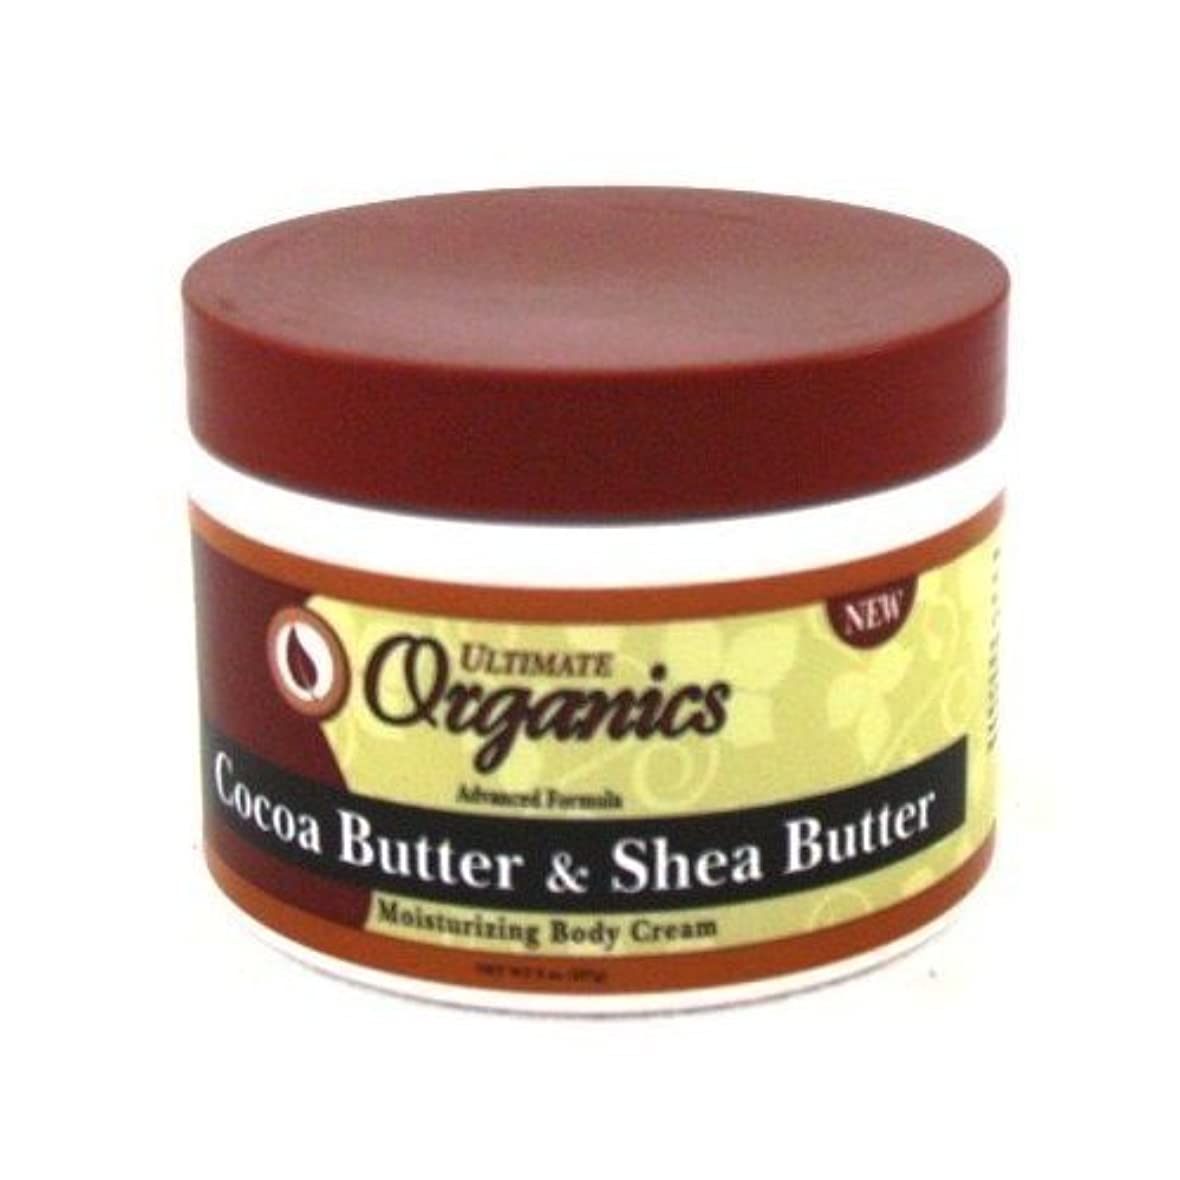 病気酸化物利用可能Ultimate Organics Cocoa Butter & Shea Butter Body Cream 235 ml (並行輸入品)